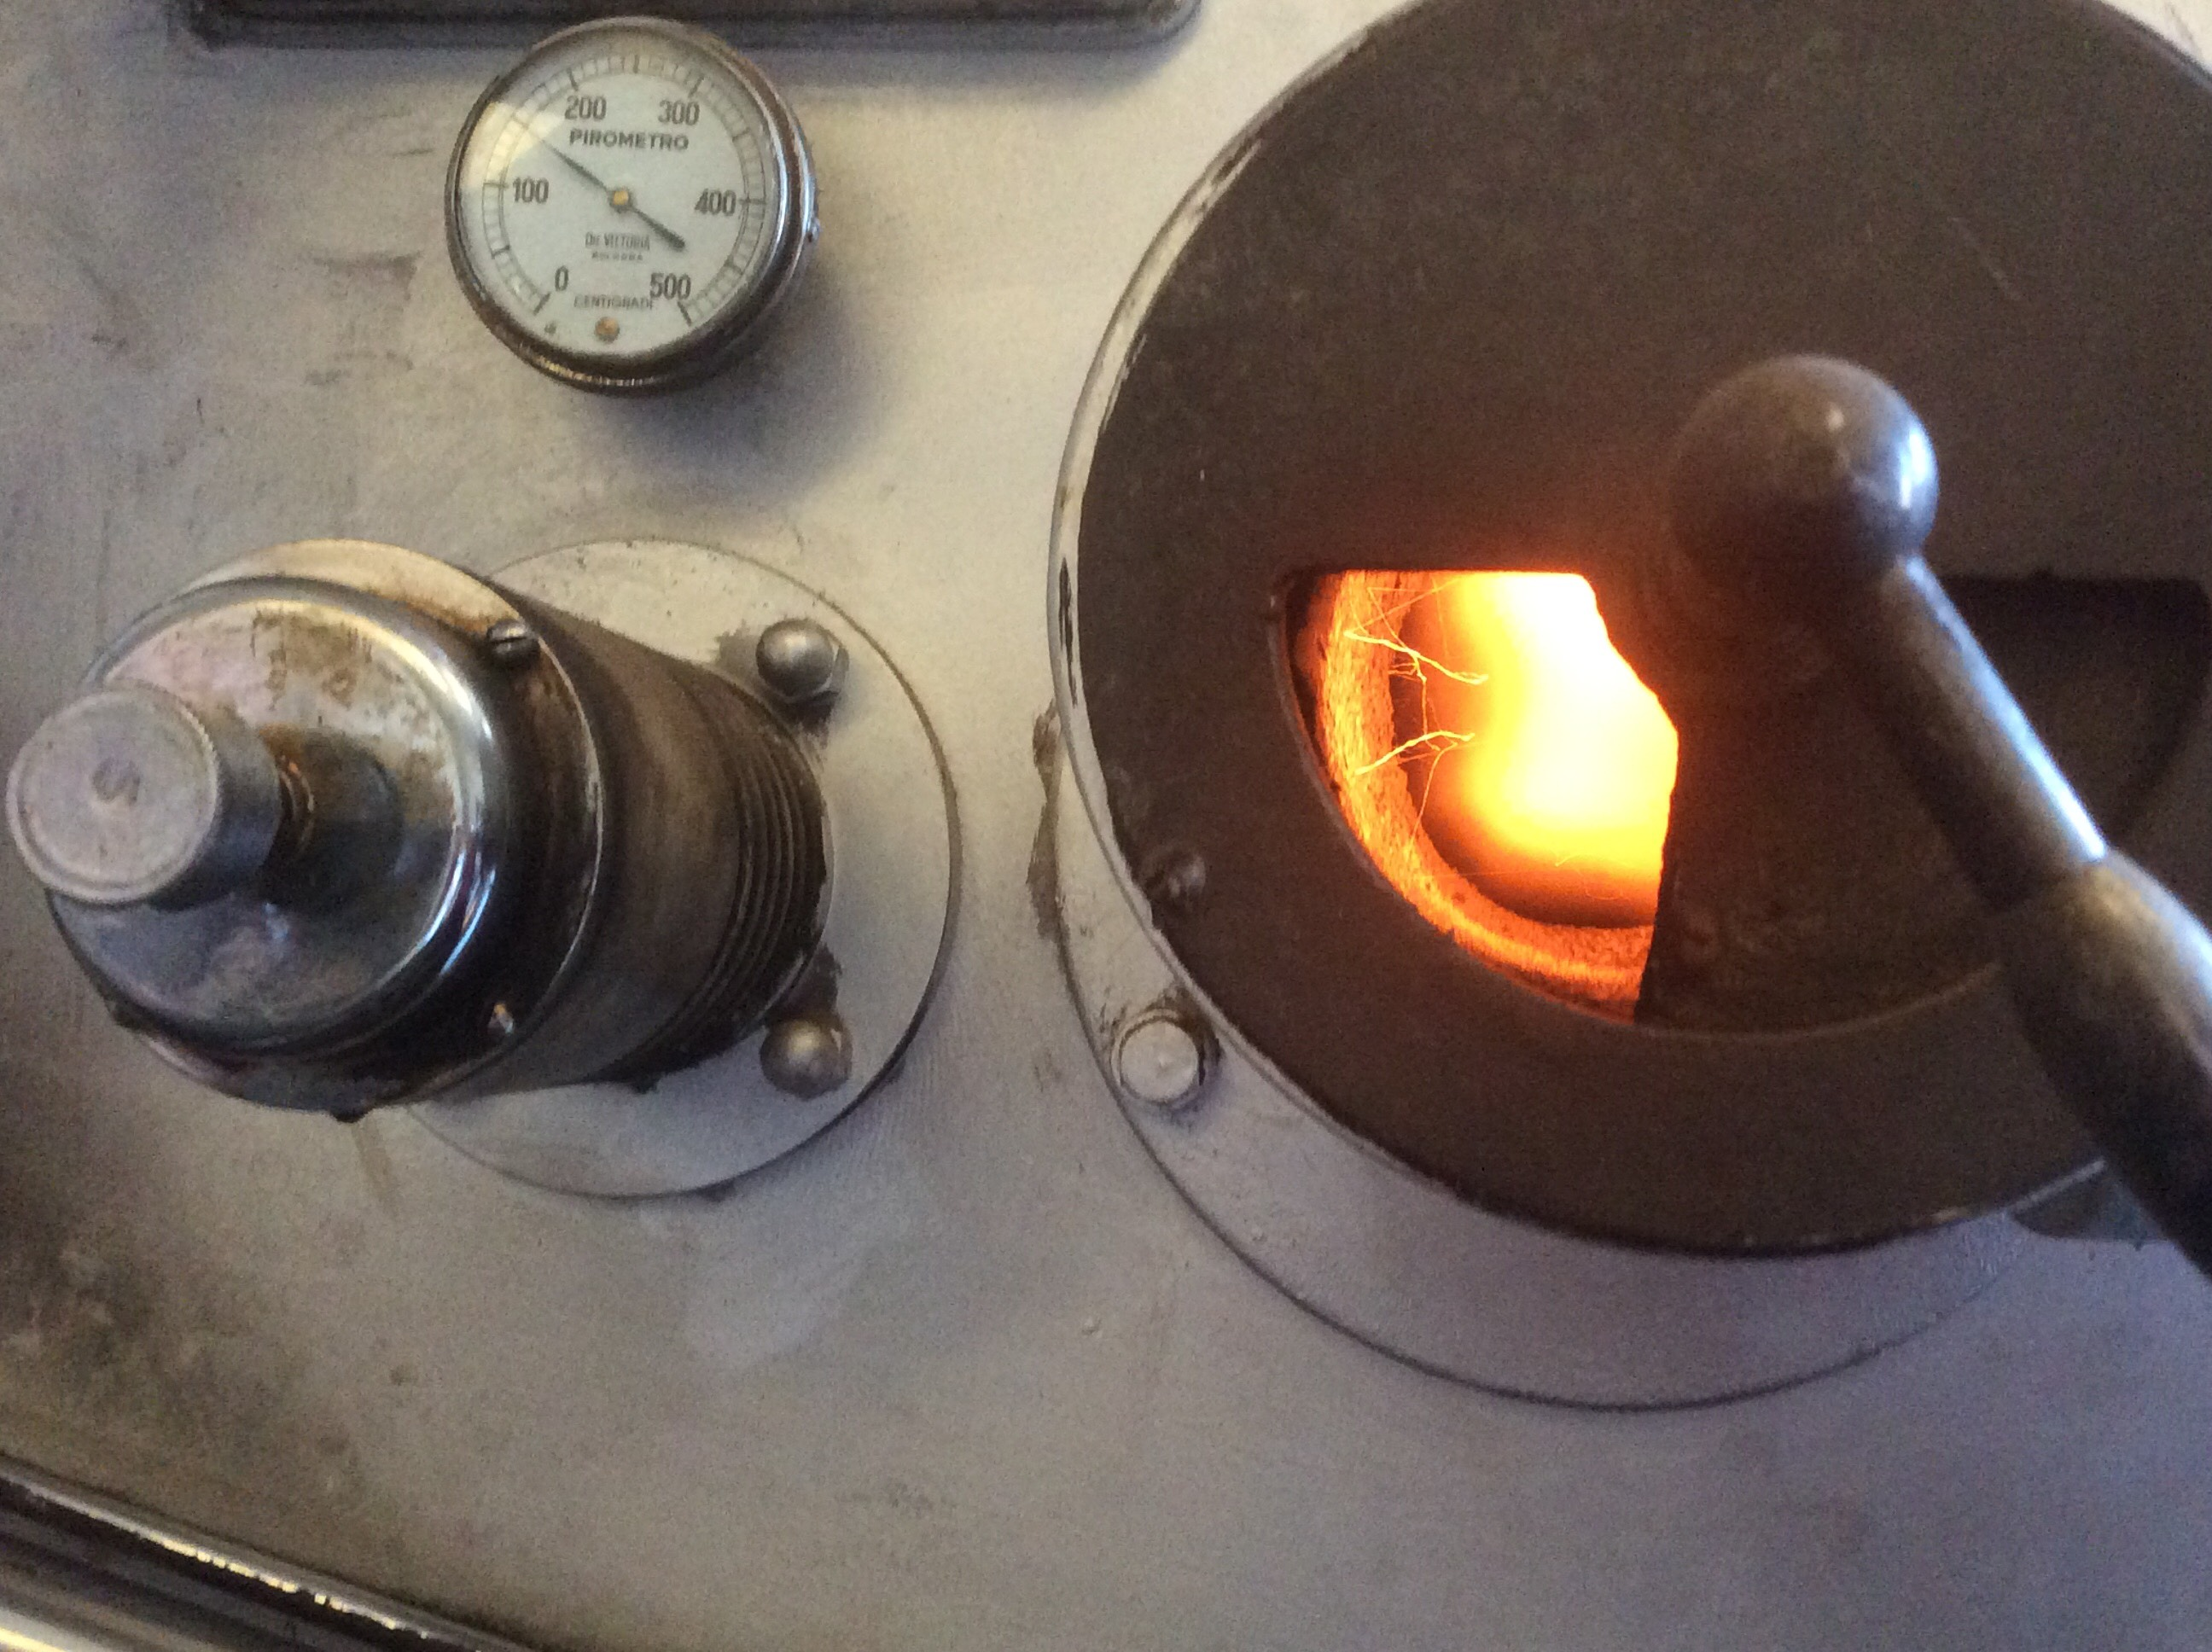 Direct flame roasting